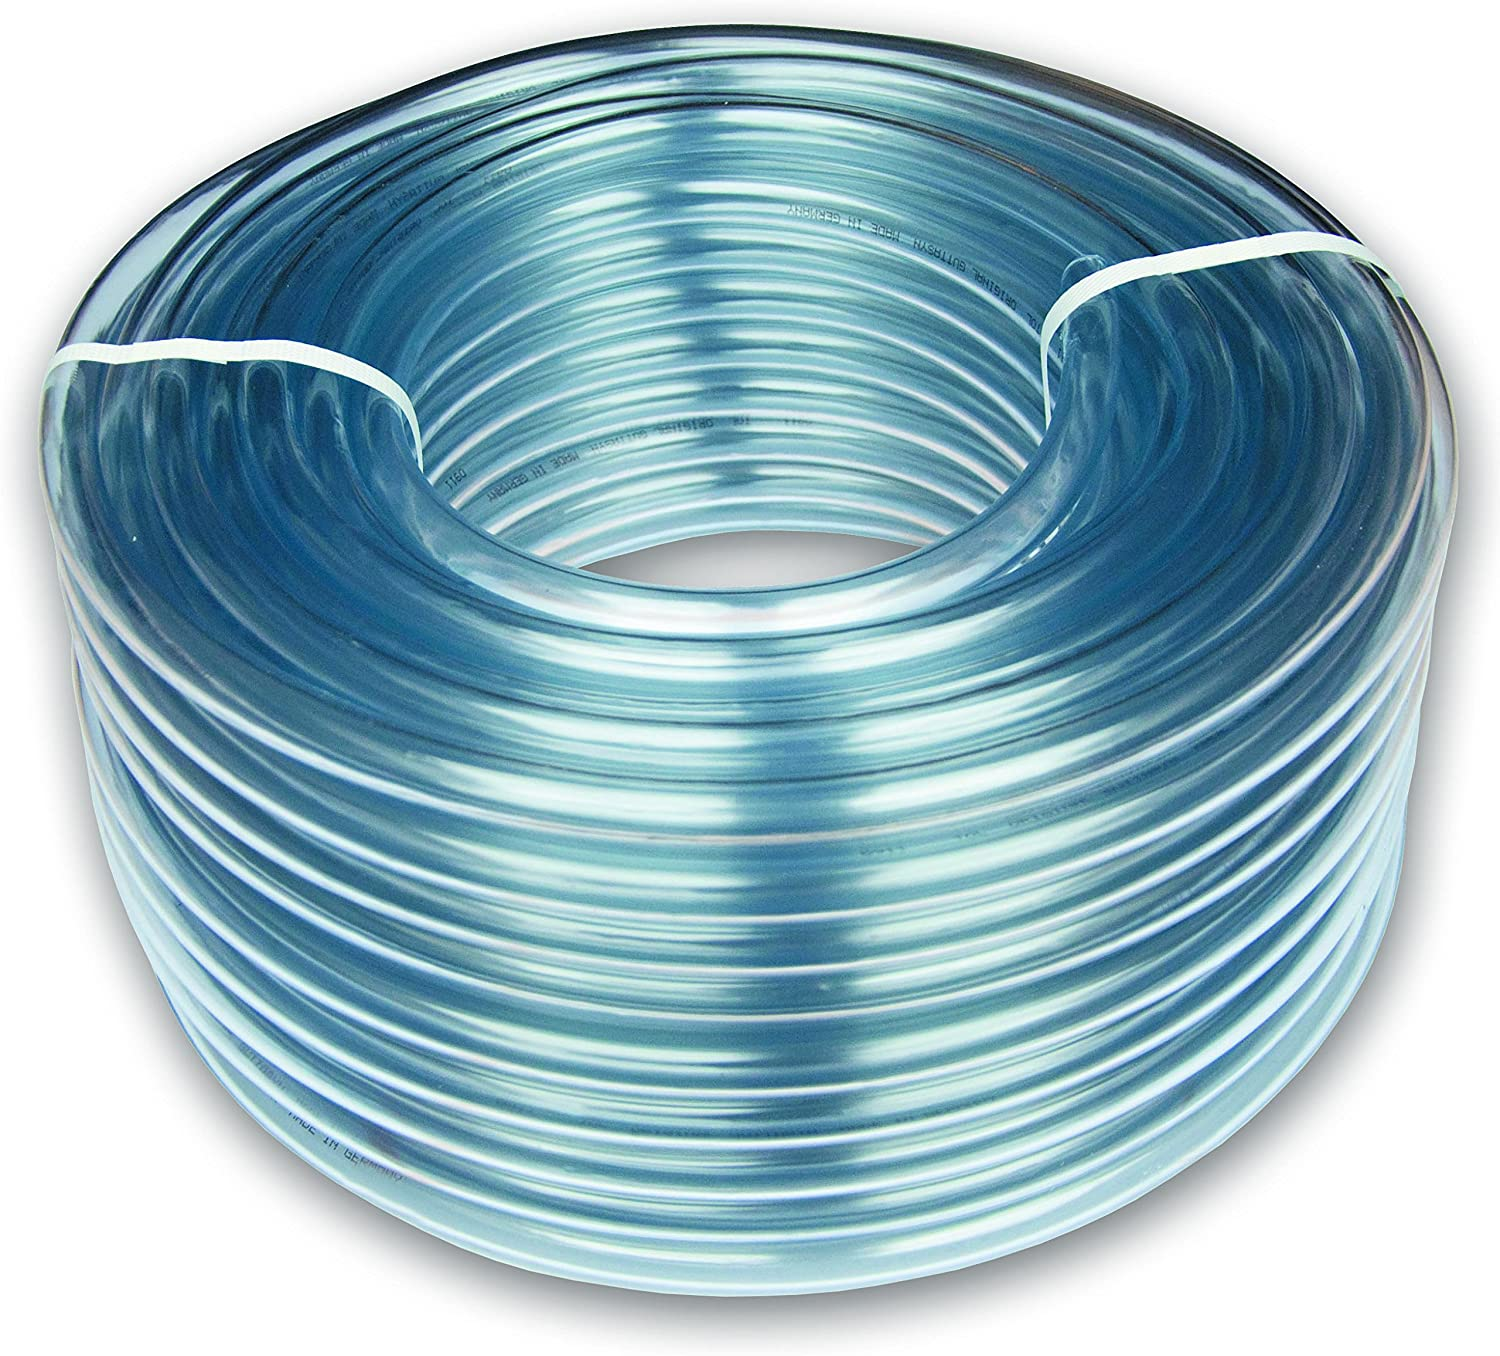 Tubo de PVC transparente 5 x 8 mm, 5 m de largo